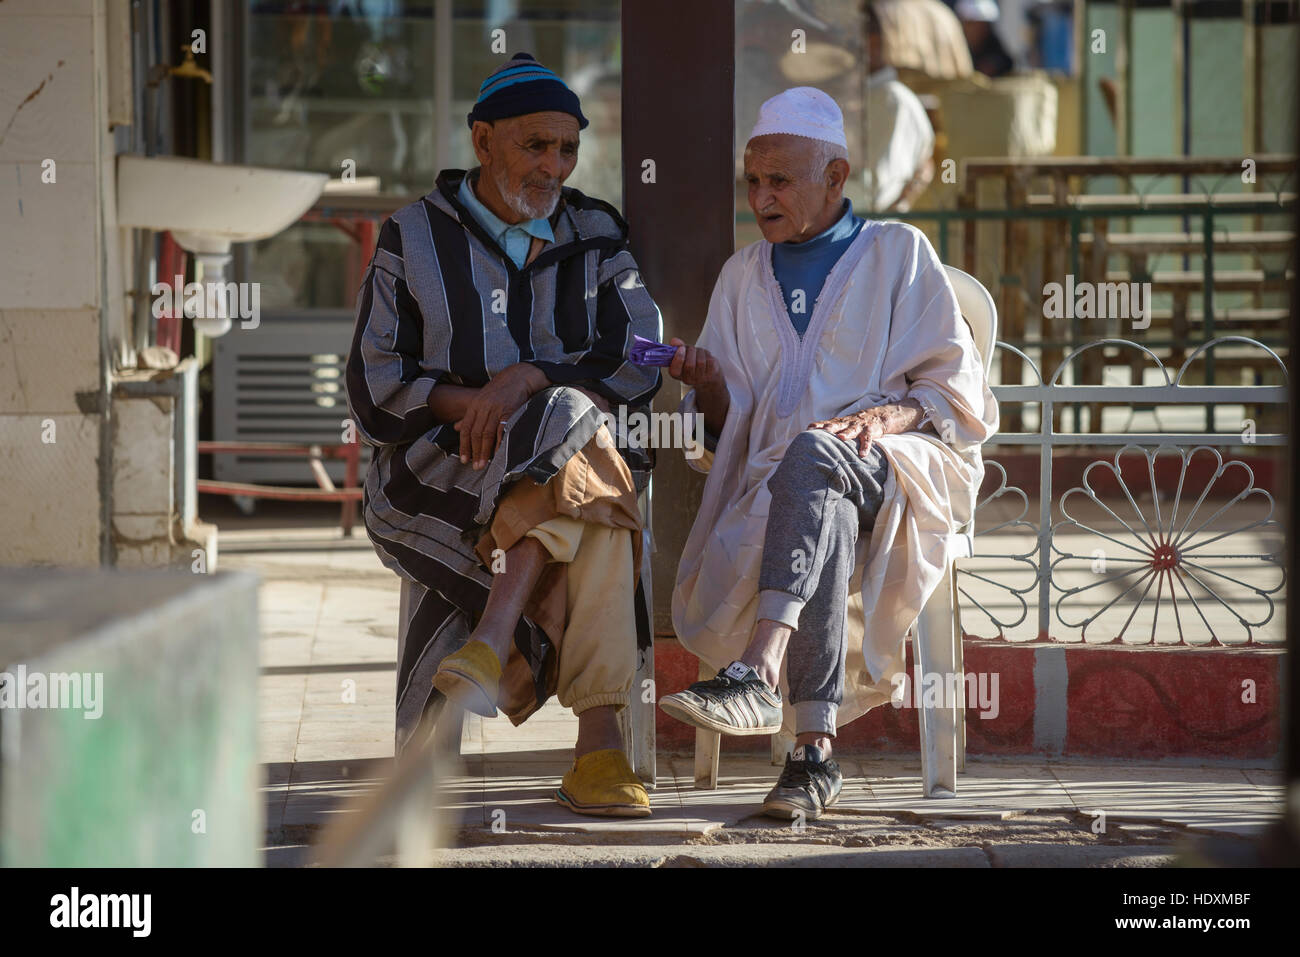 Moroccan men, Morocco - Stock Image